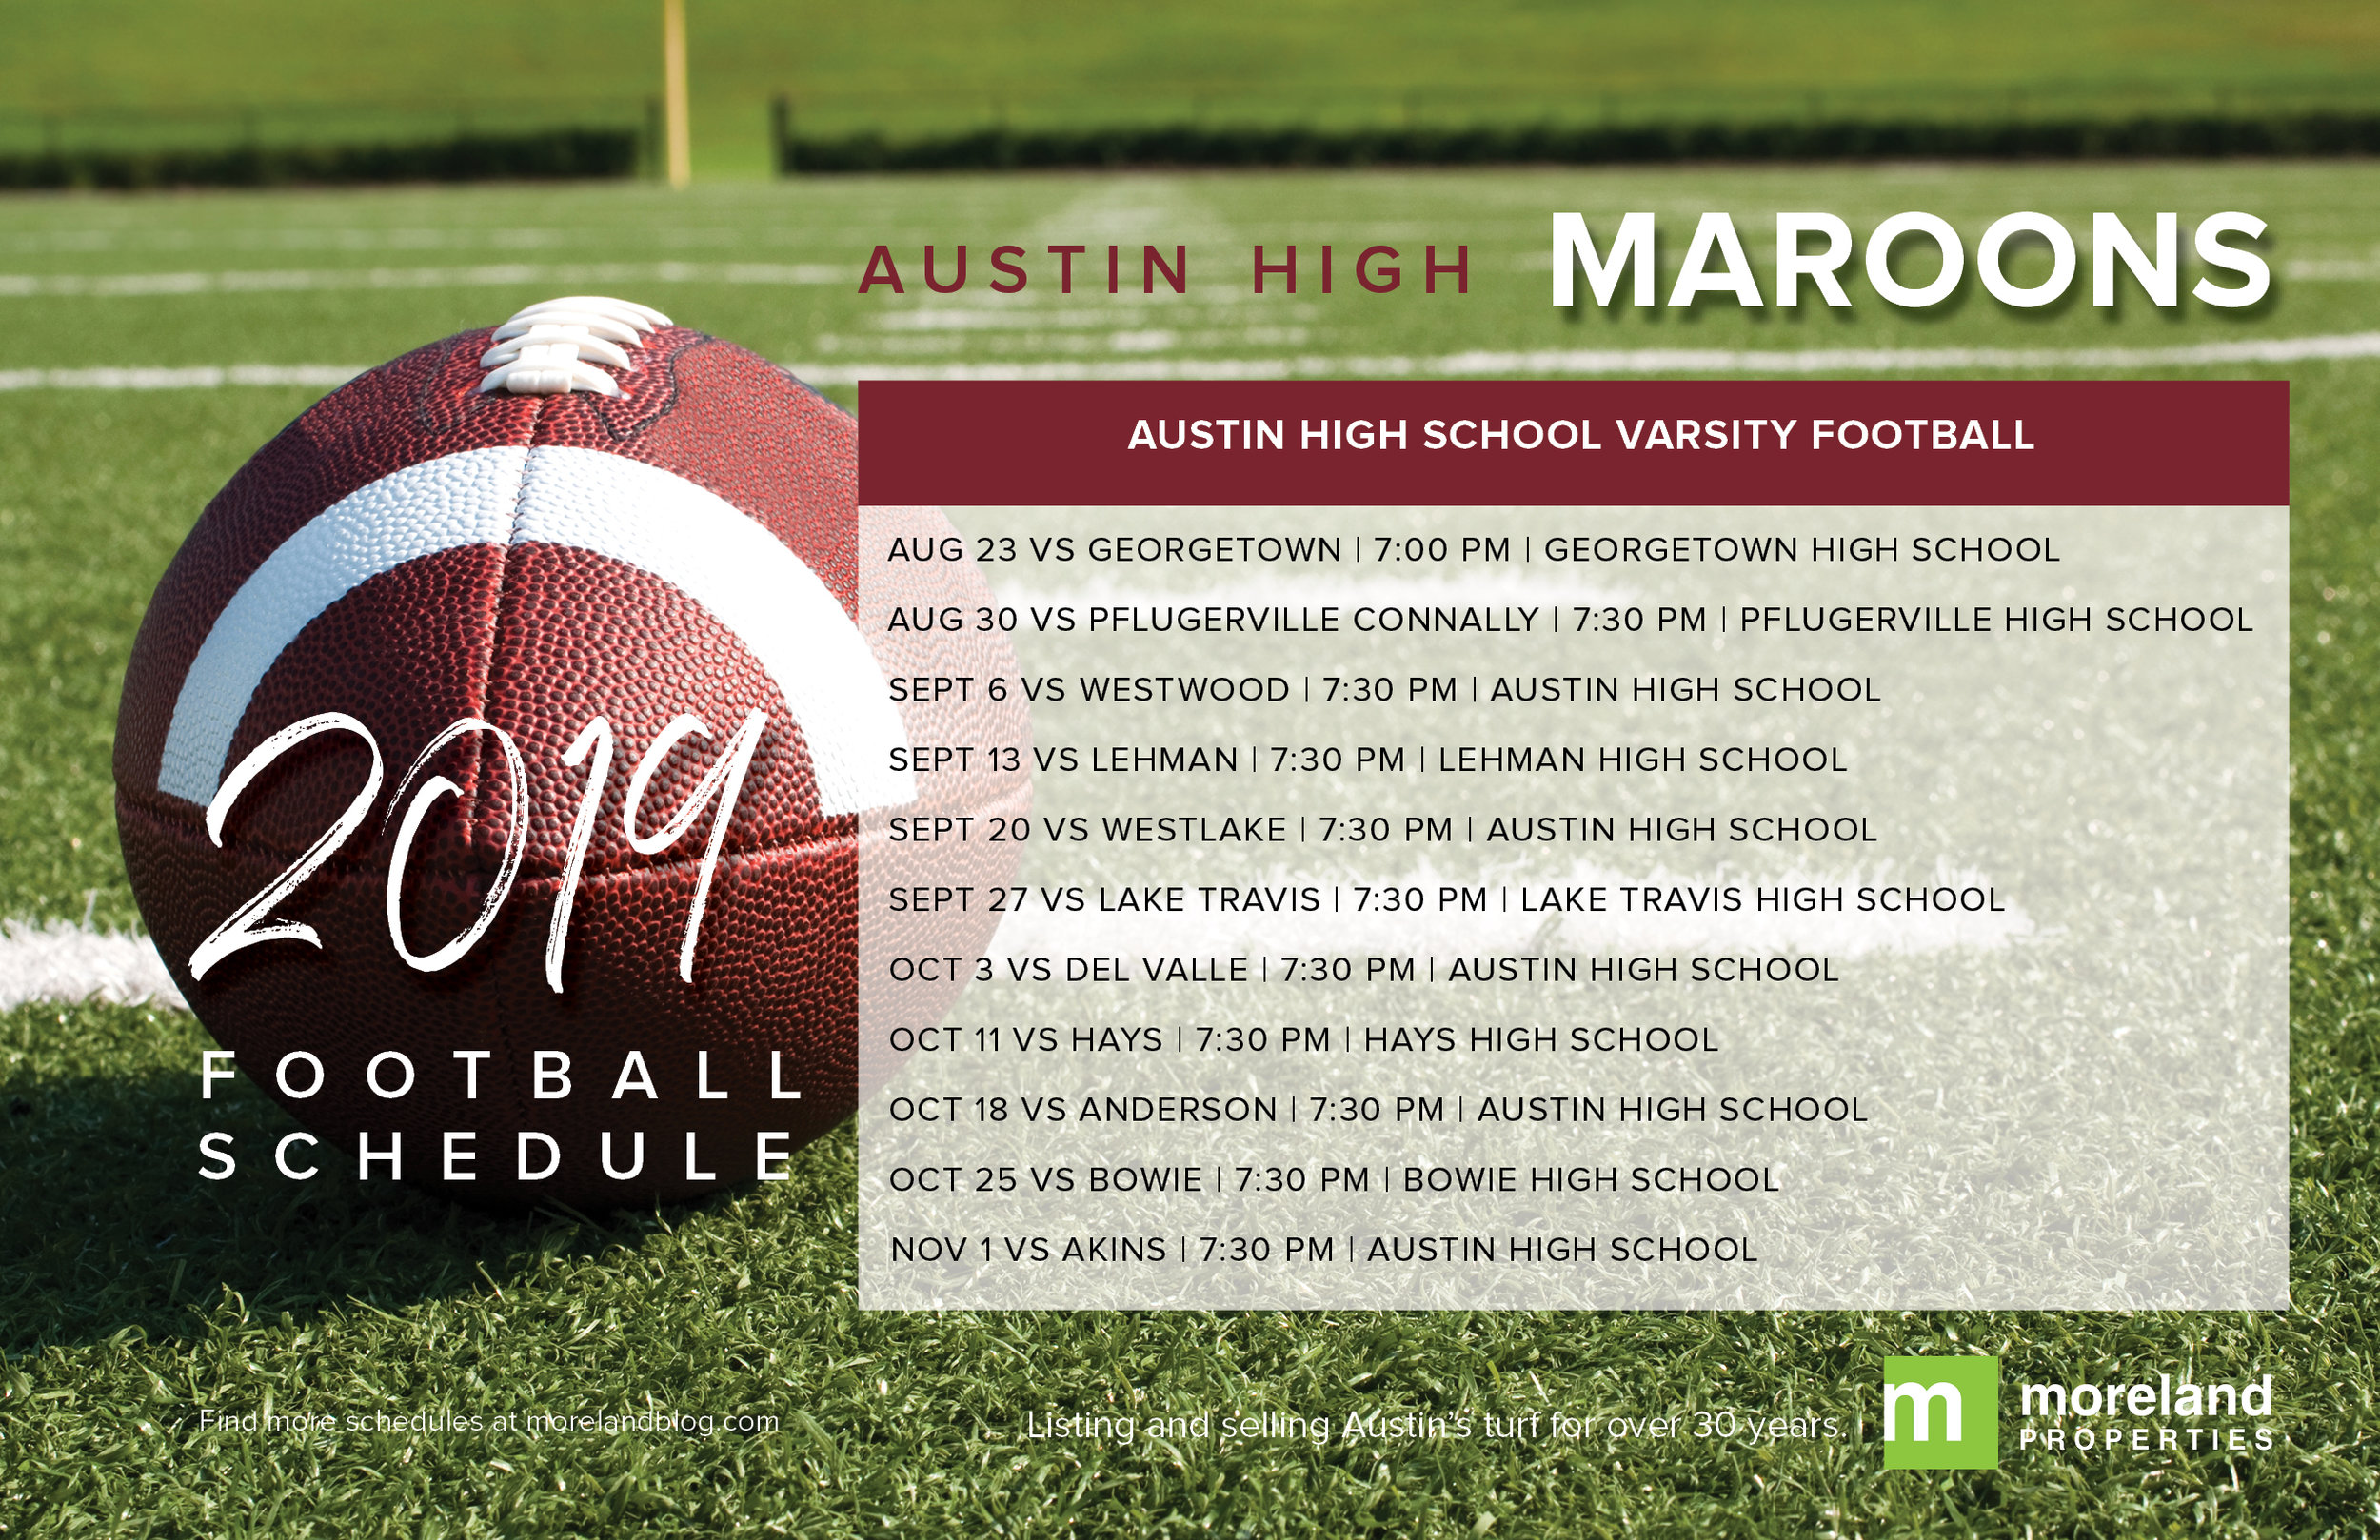 2019 Football Schedule-AustinHigh.jpg